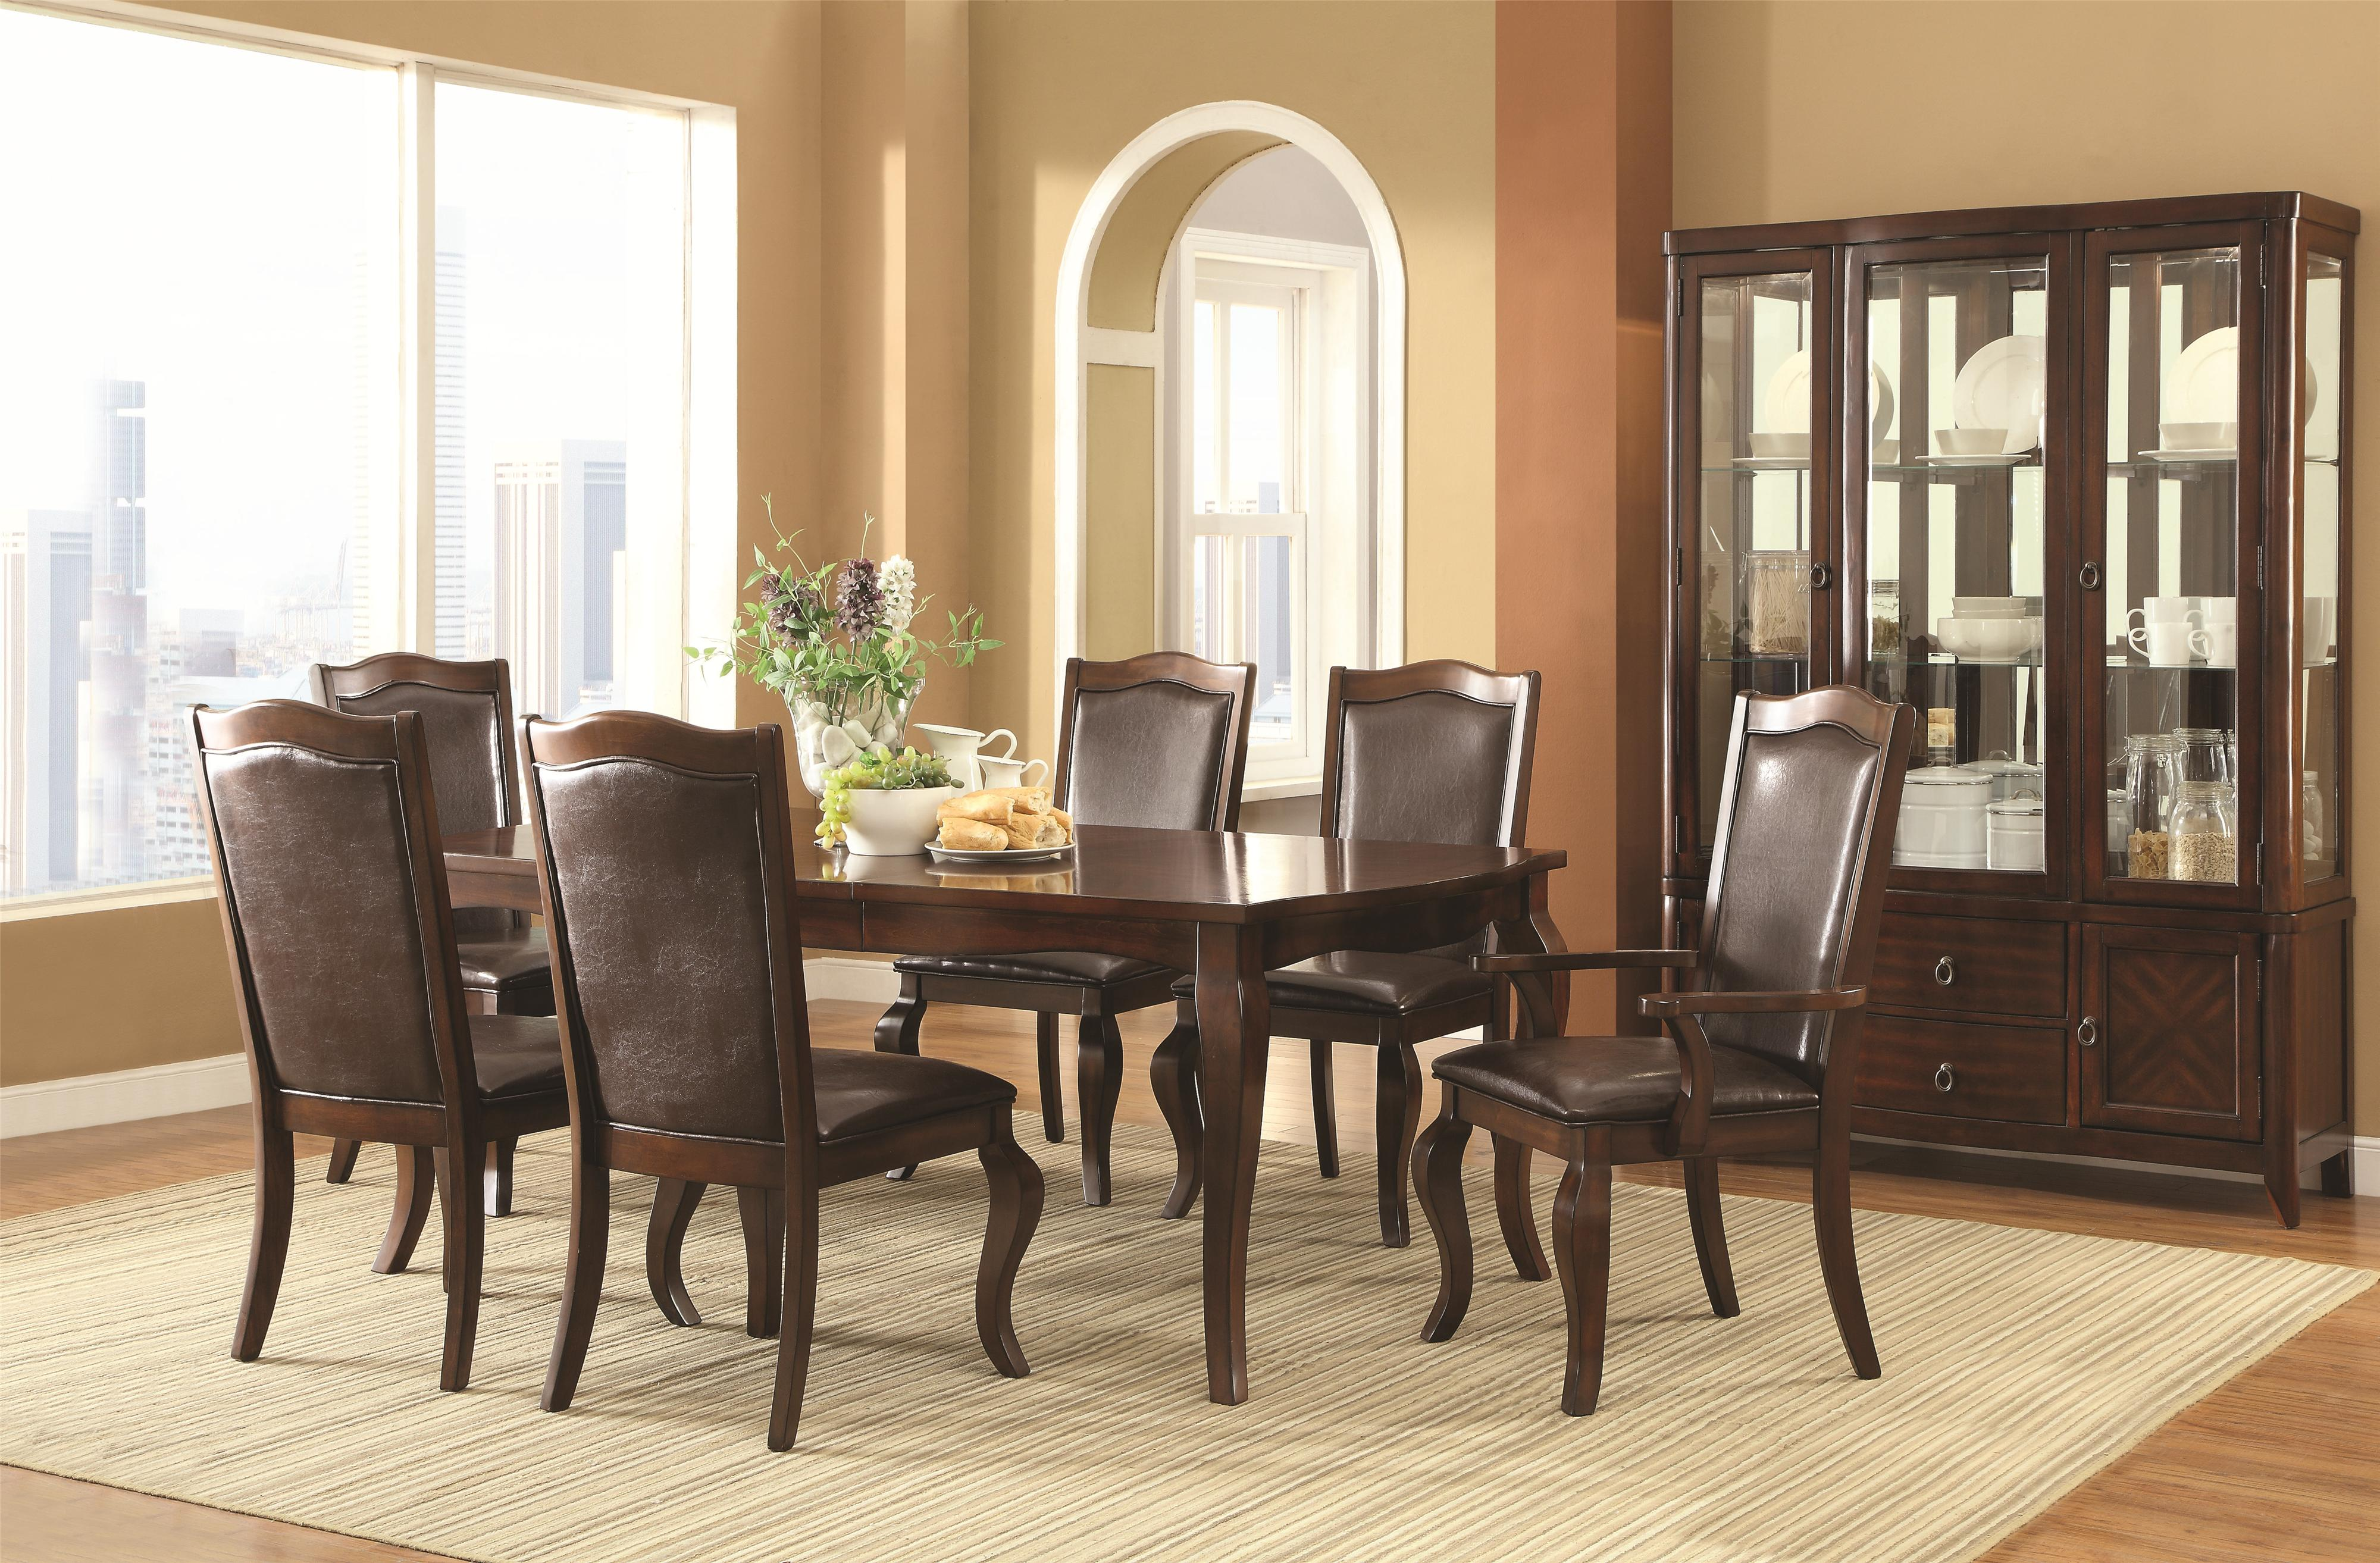 Coaster Louanna Formal Dining Room Group - Item Number: 104840 Formal Dining Room Group 1